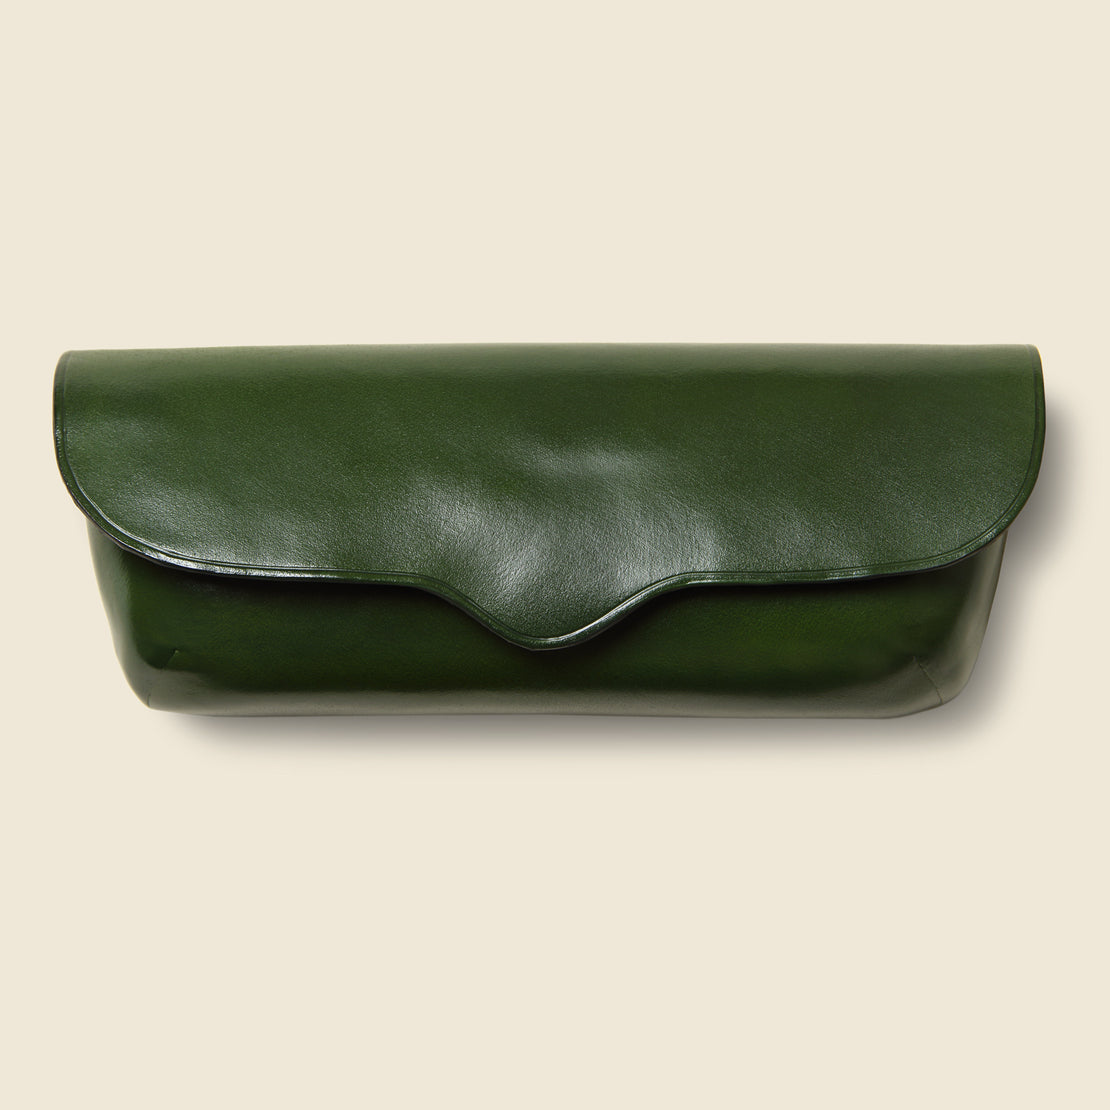 Il Bussetto Eyeglass Case - Green